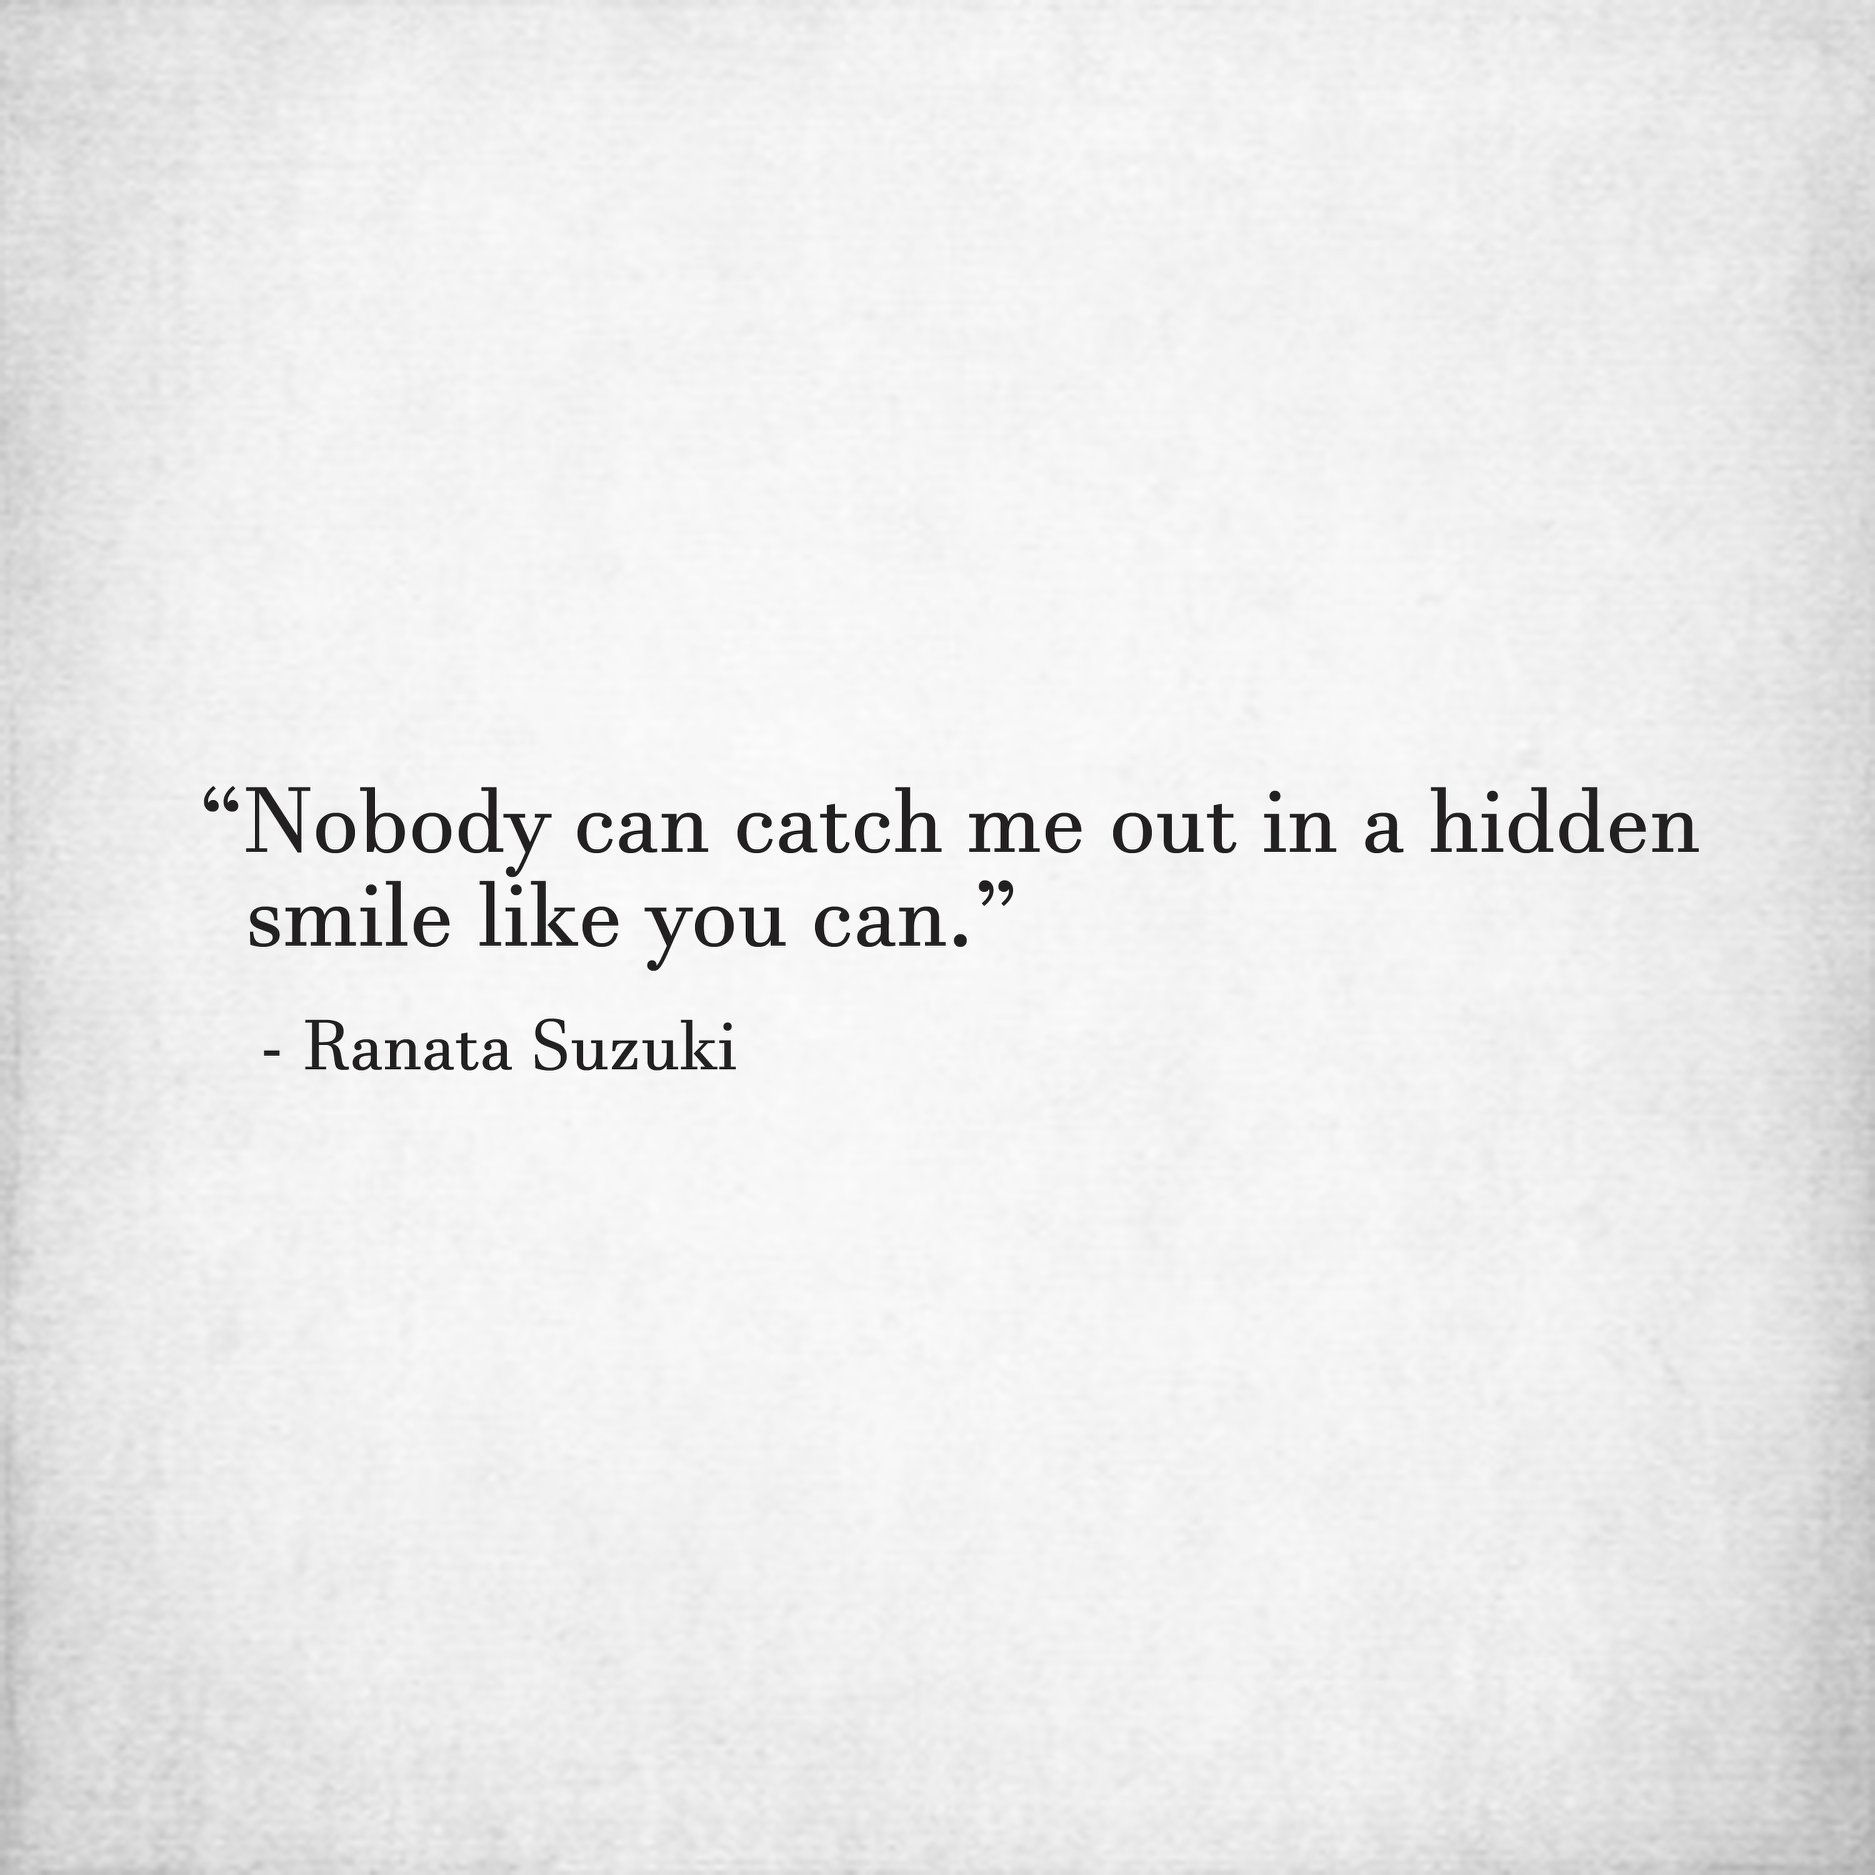 Nobody Can Catch Me Out In A Hidden Smile Like You Can Ranata Suzuki Love Relationship Beautiful Words Inspirational Quotes Smile Quotes Love Quotes